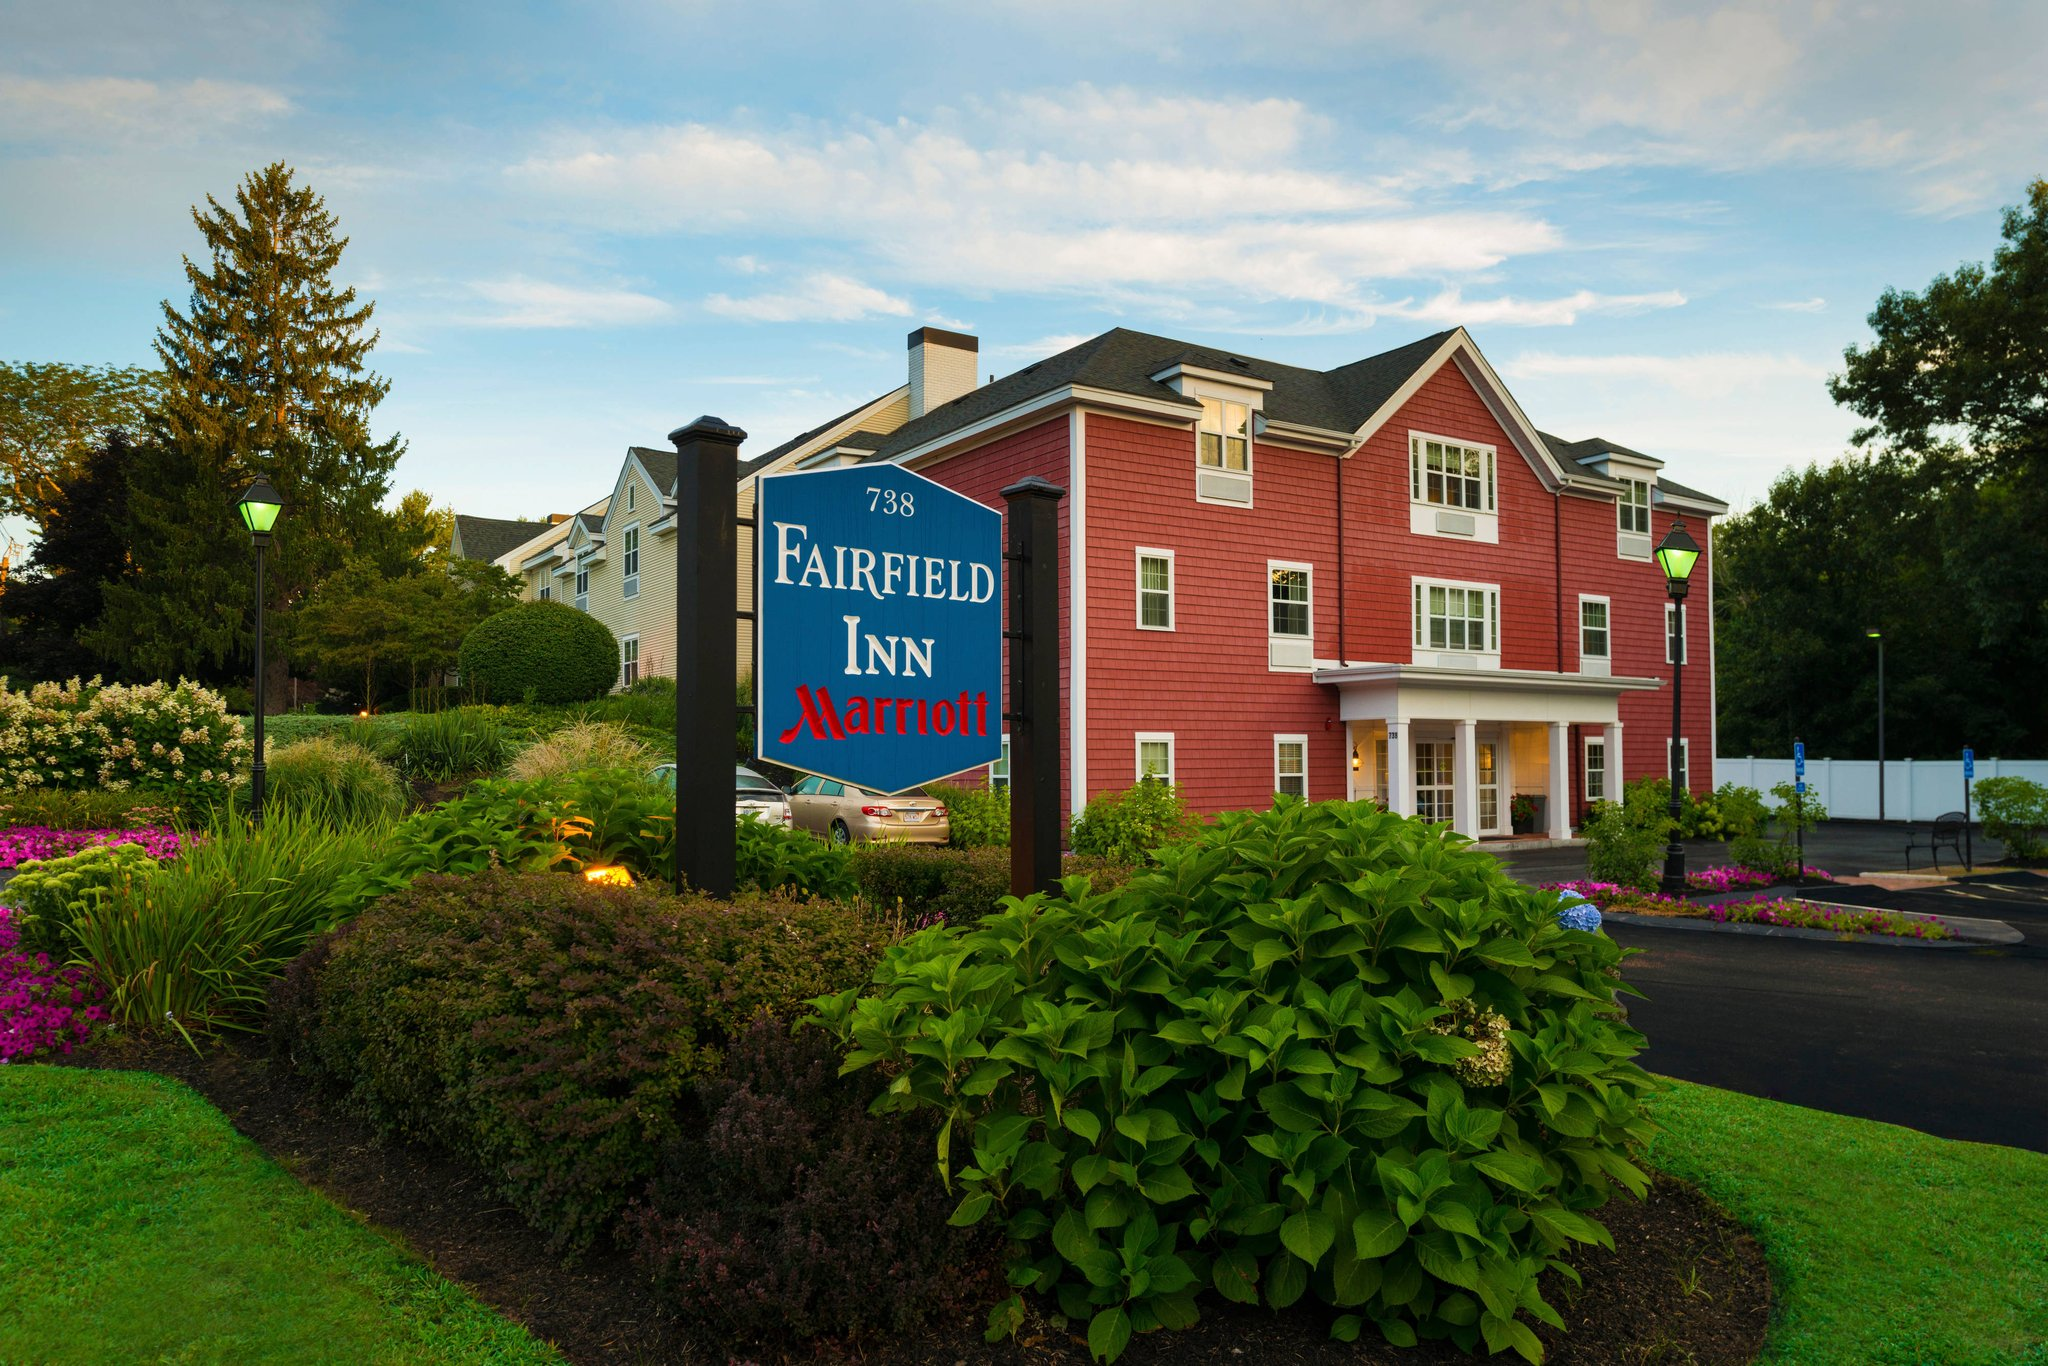 Fairfield Inn Boston Sudbury